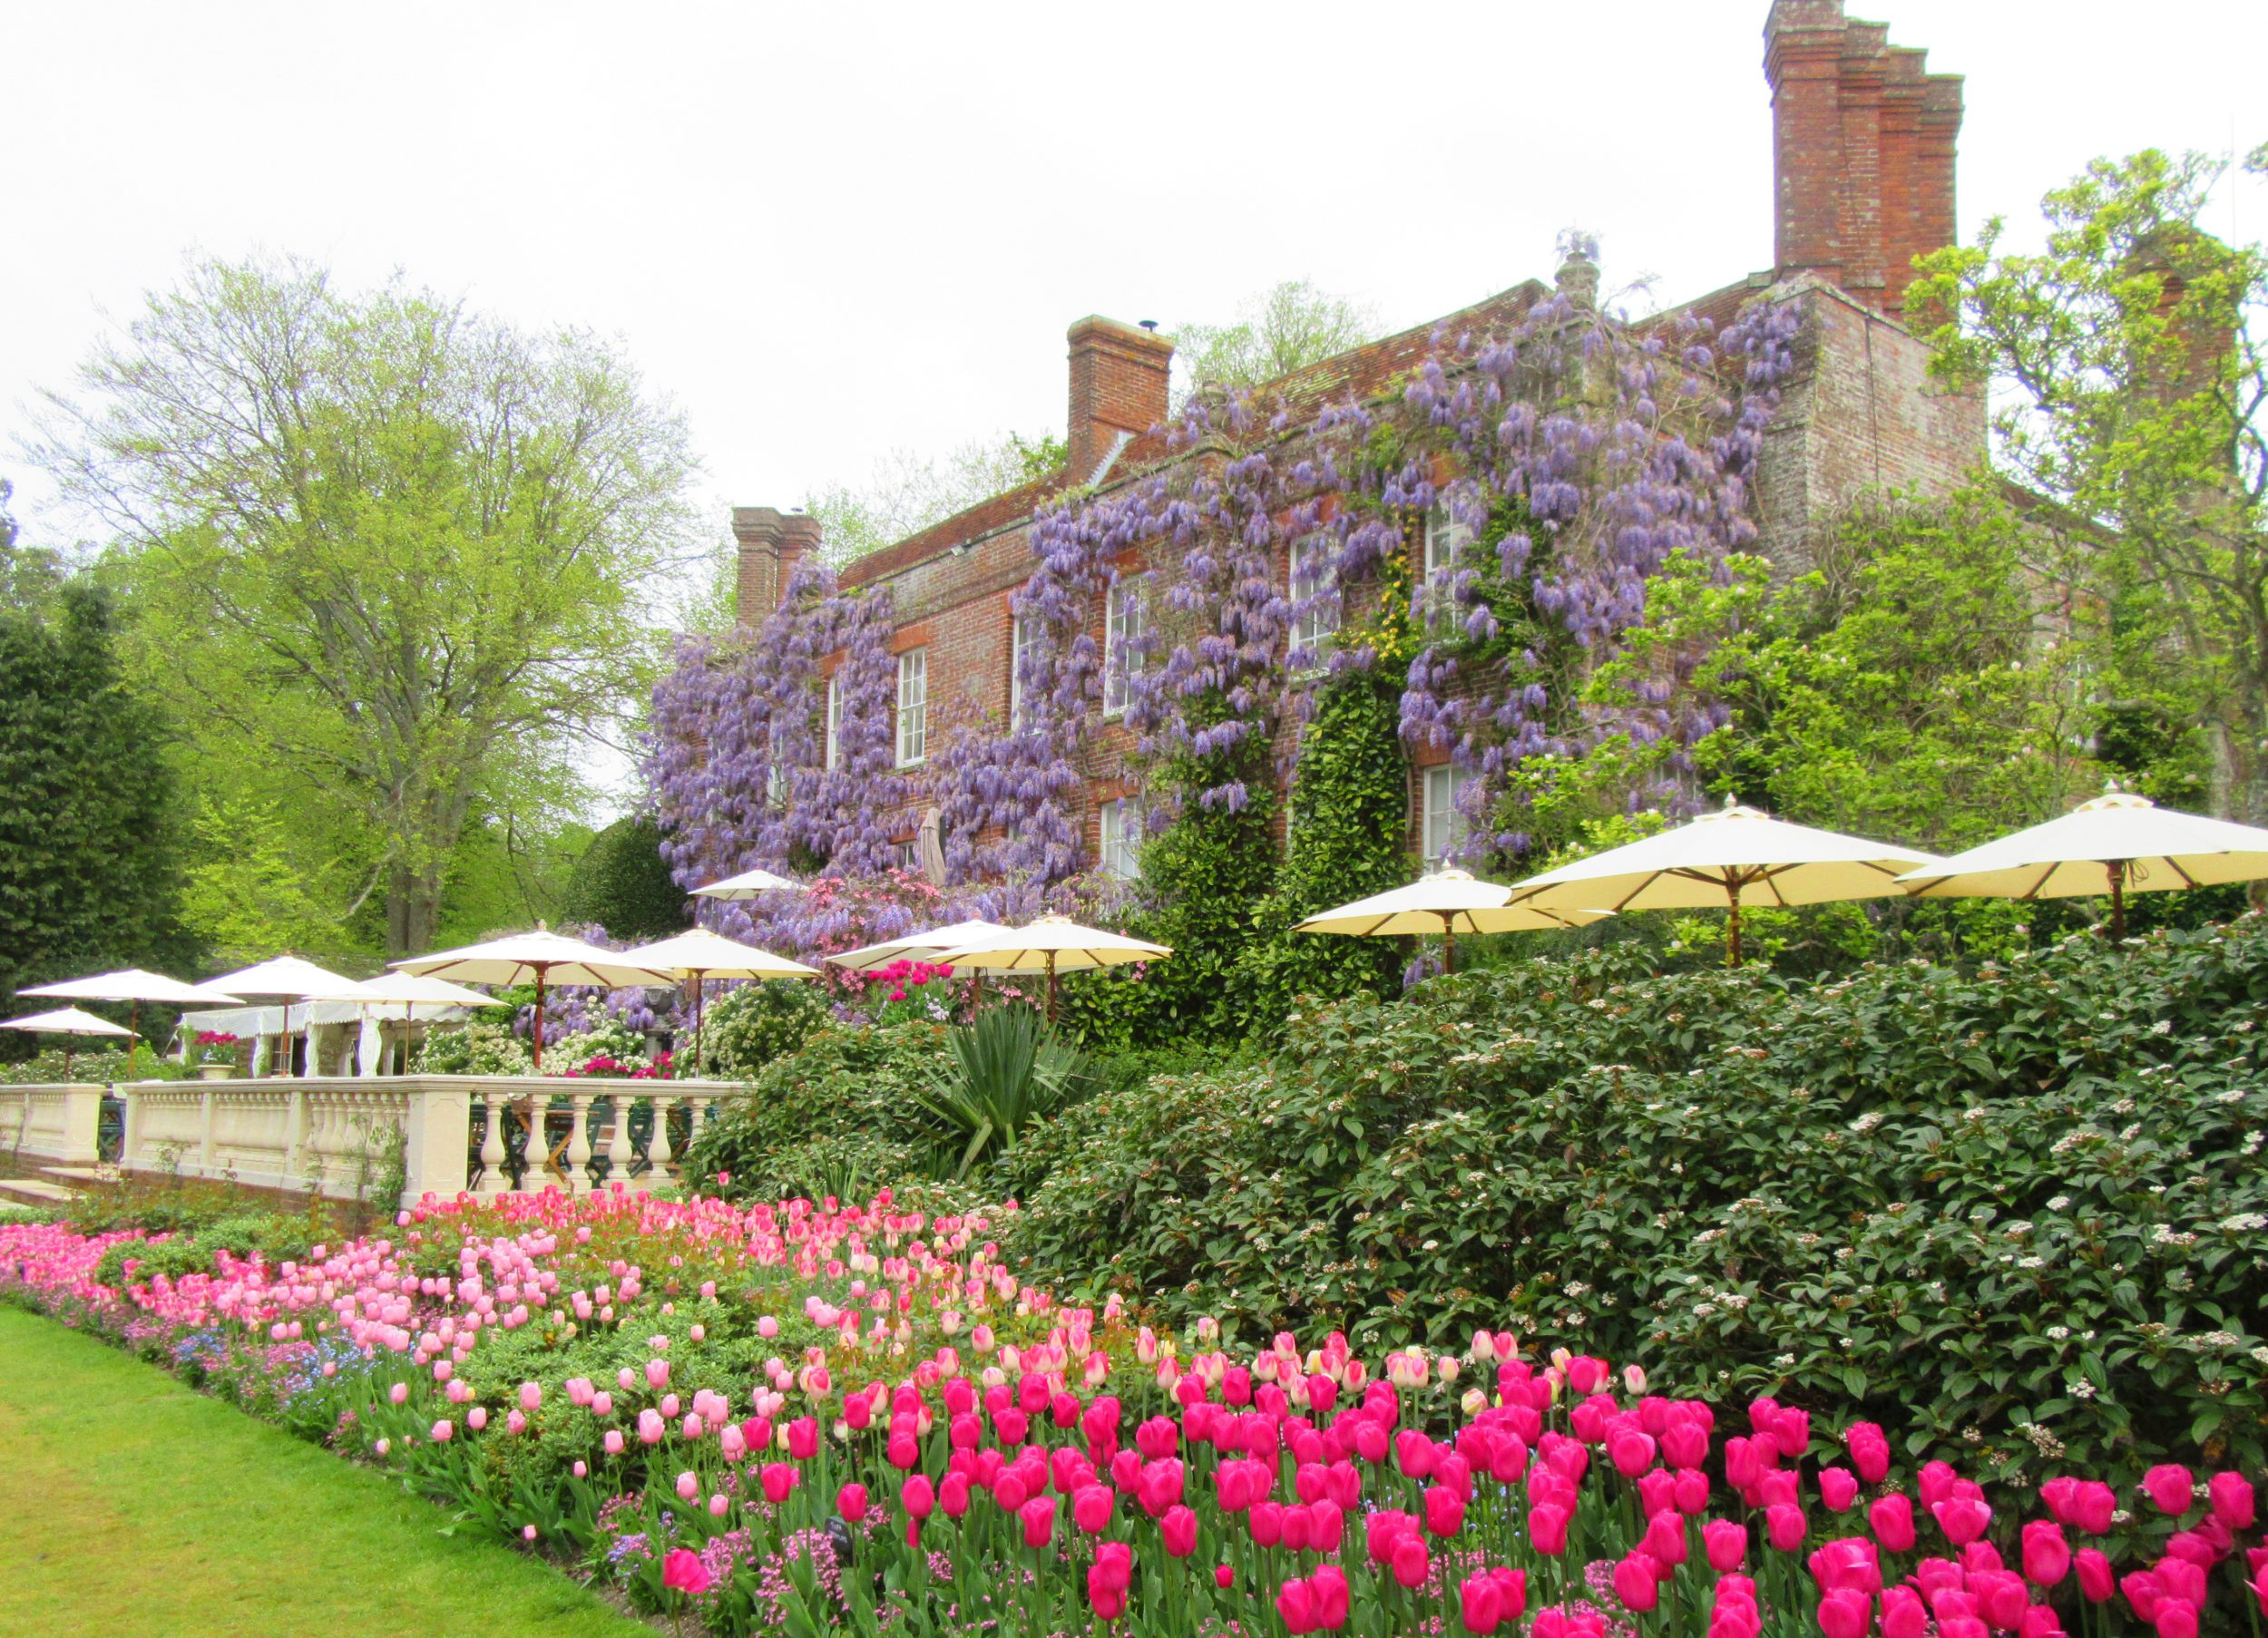 PASHLEY MANOR GARDENS back terrace, tulips and wisteria by Kate Wilson